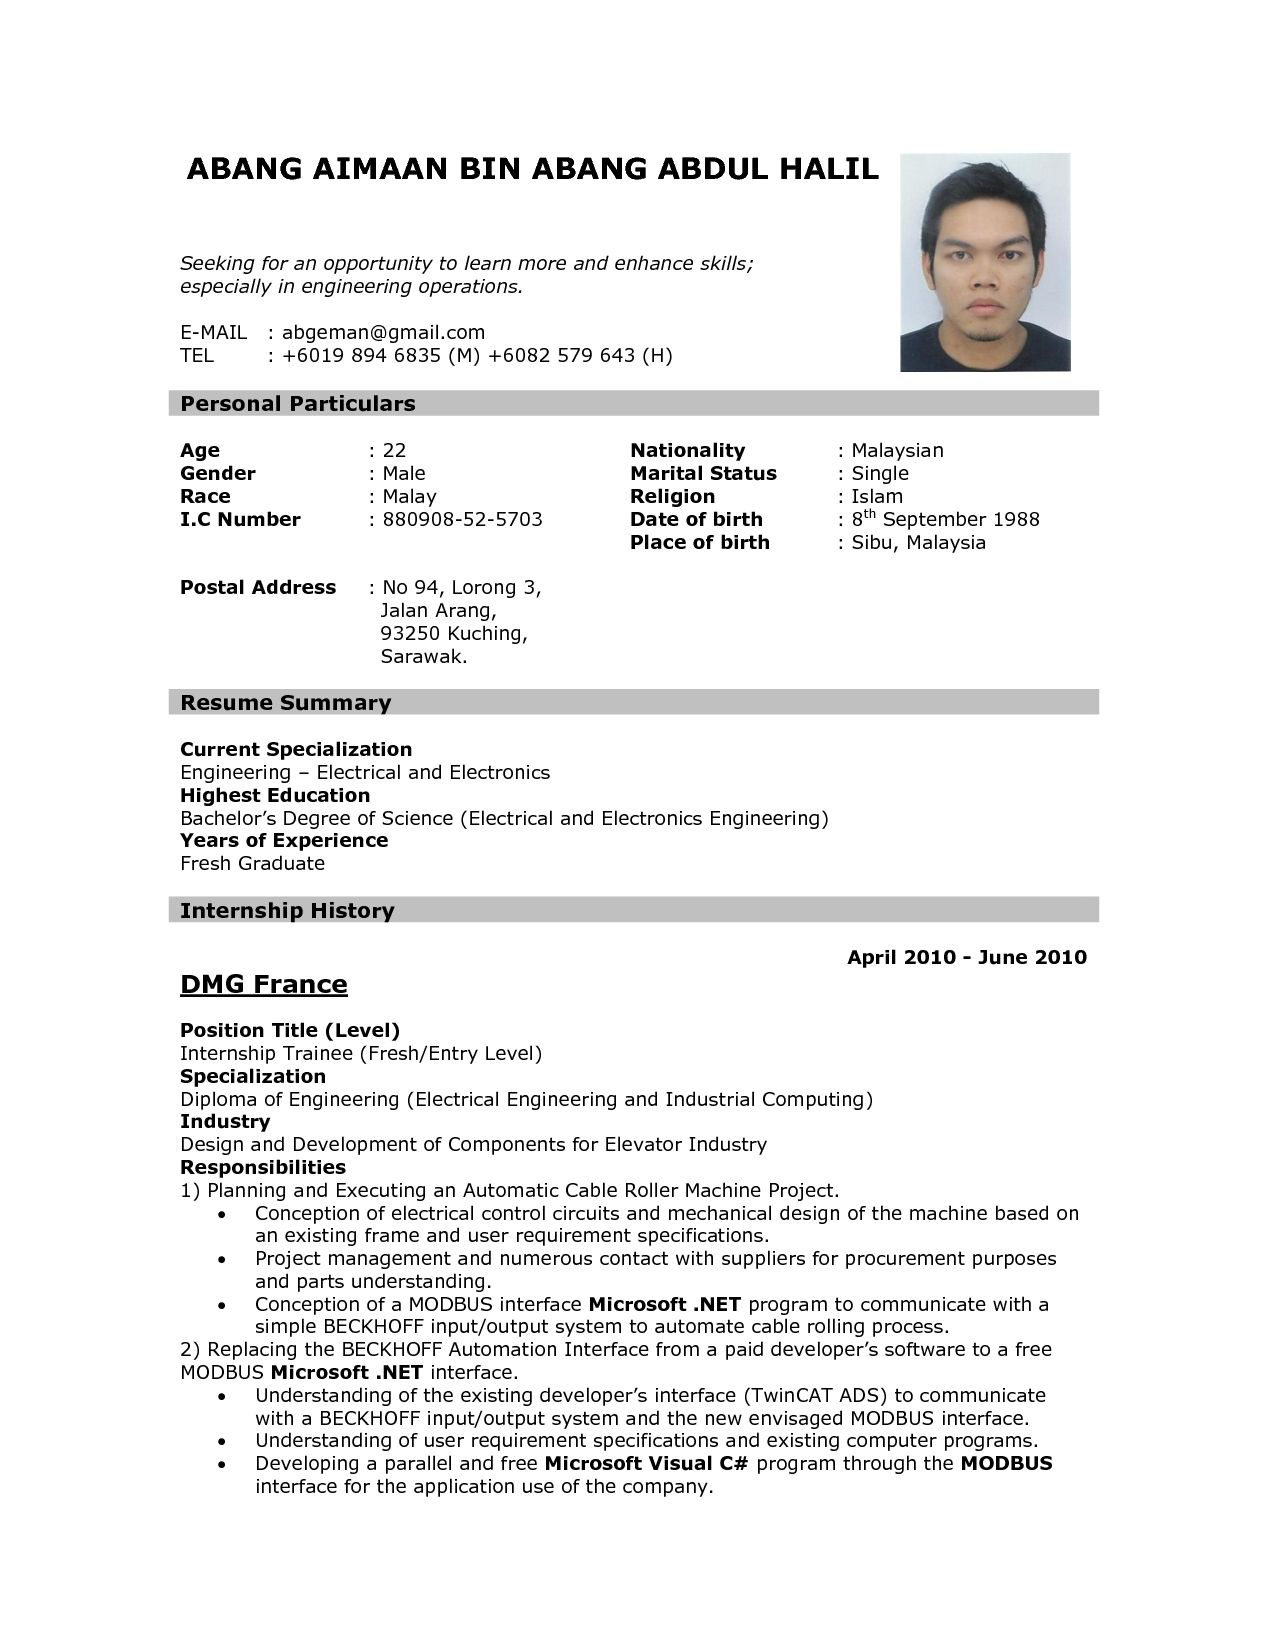 Cv Template Job Application Resume Examples Job Resume Format Job Resume Samples Job Resume